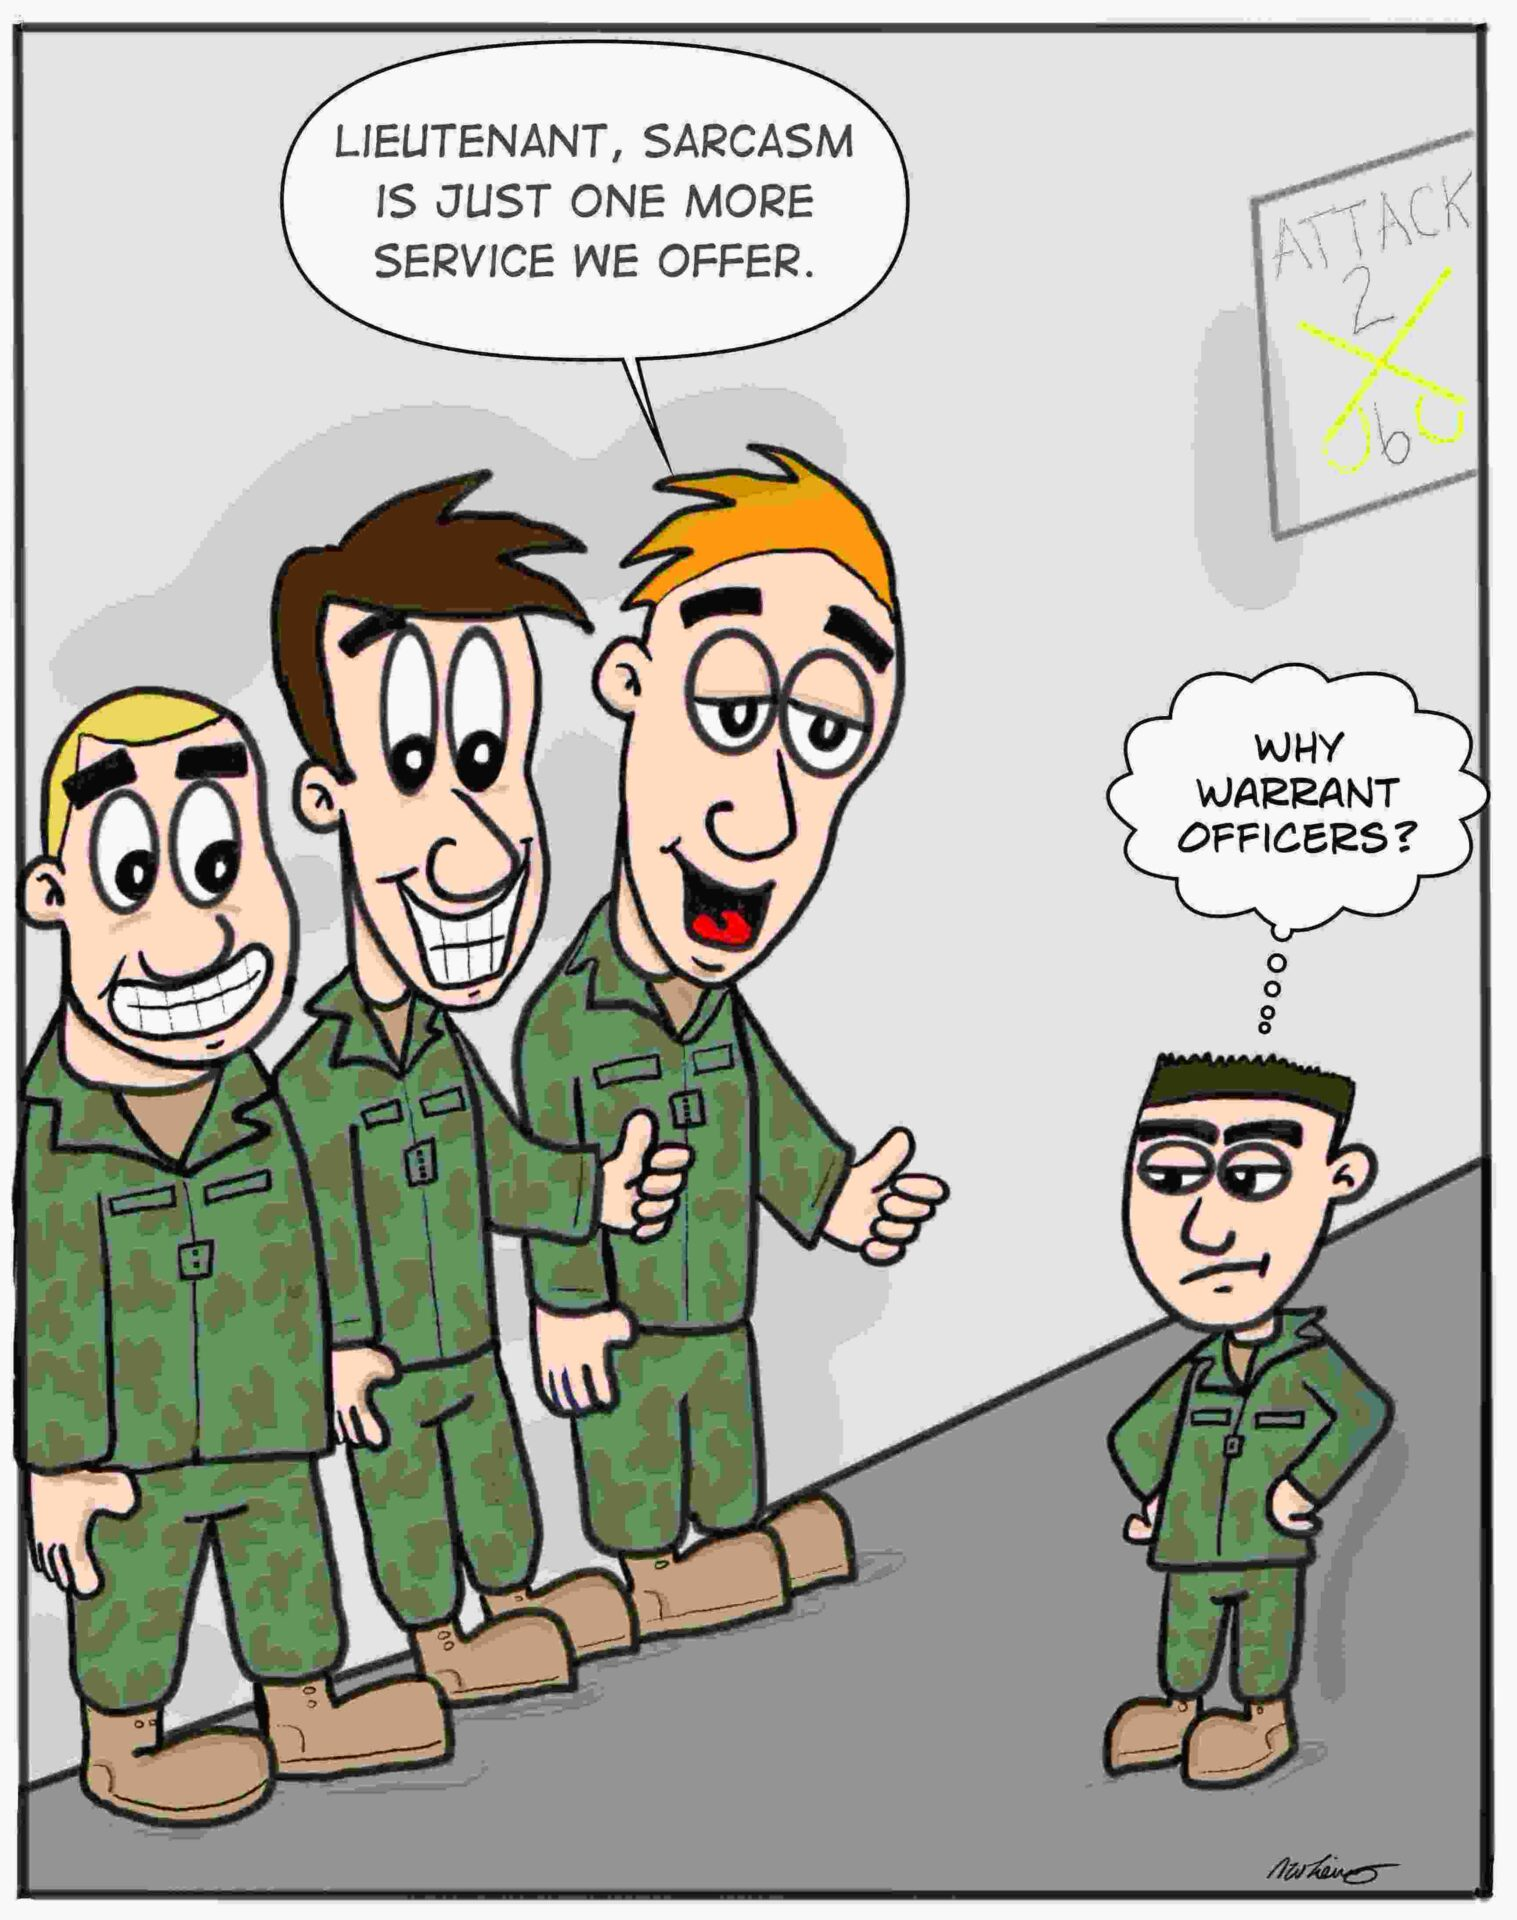 Warrant Officer Sarcasm